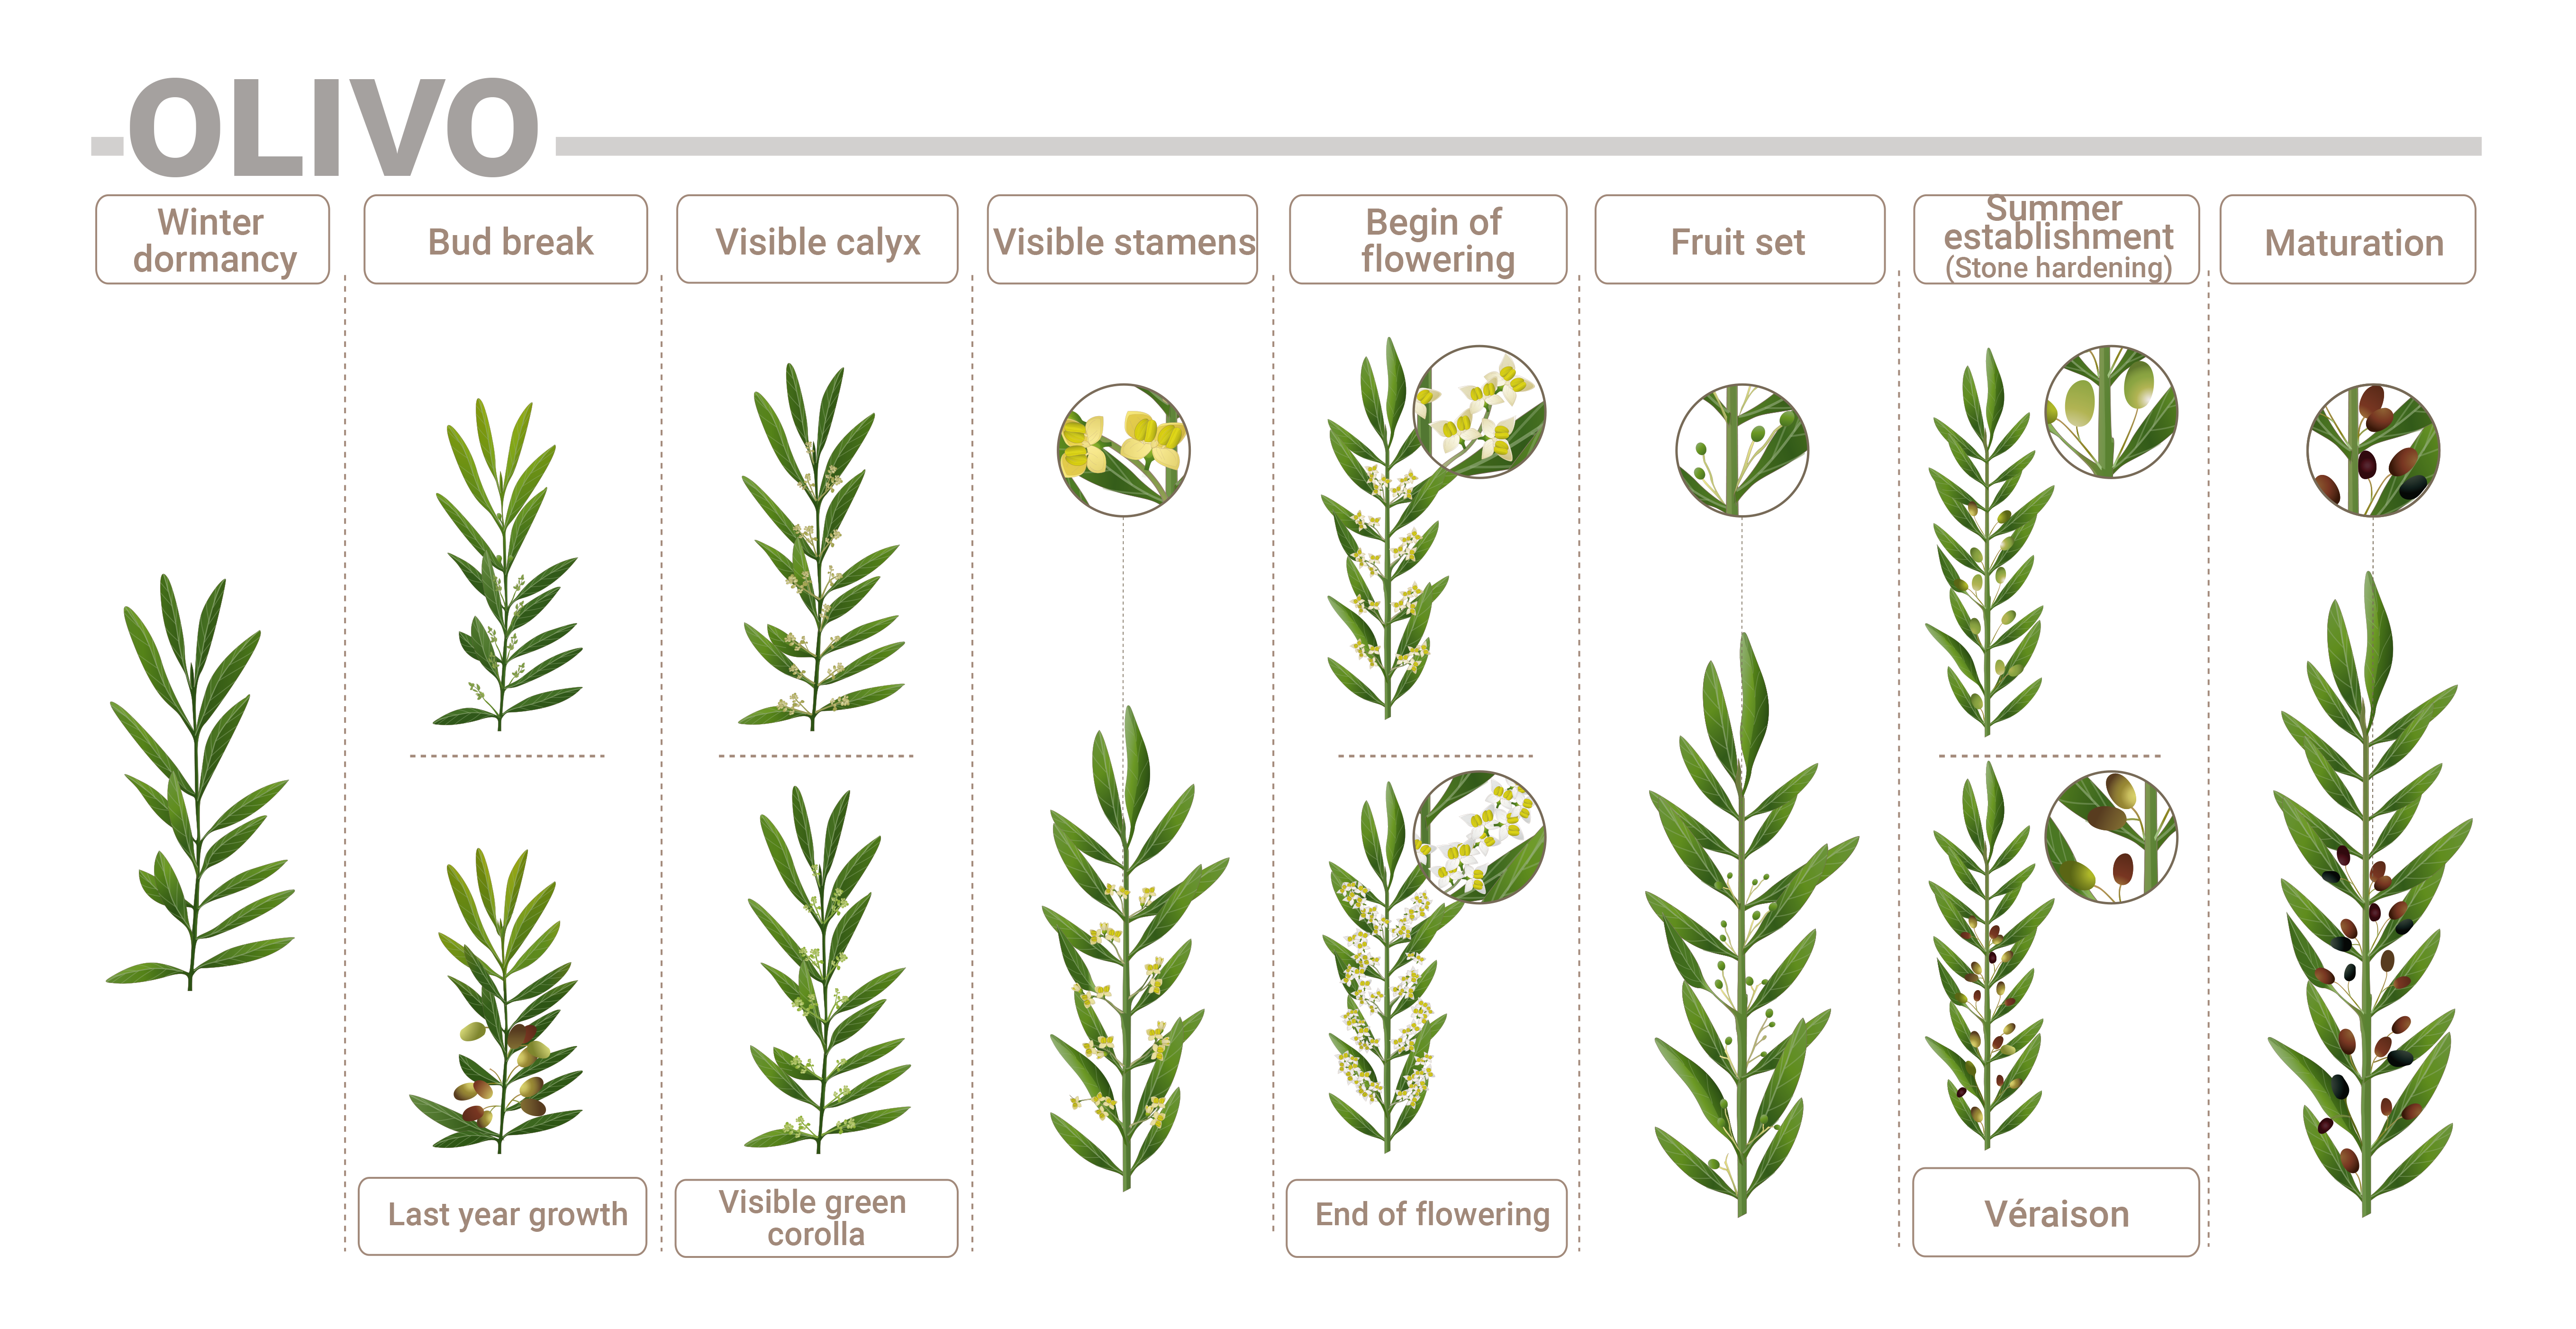 Olive phenological phases